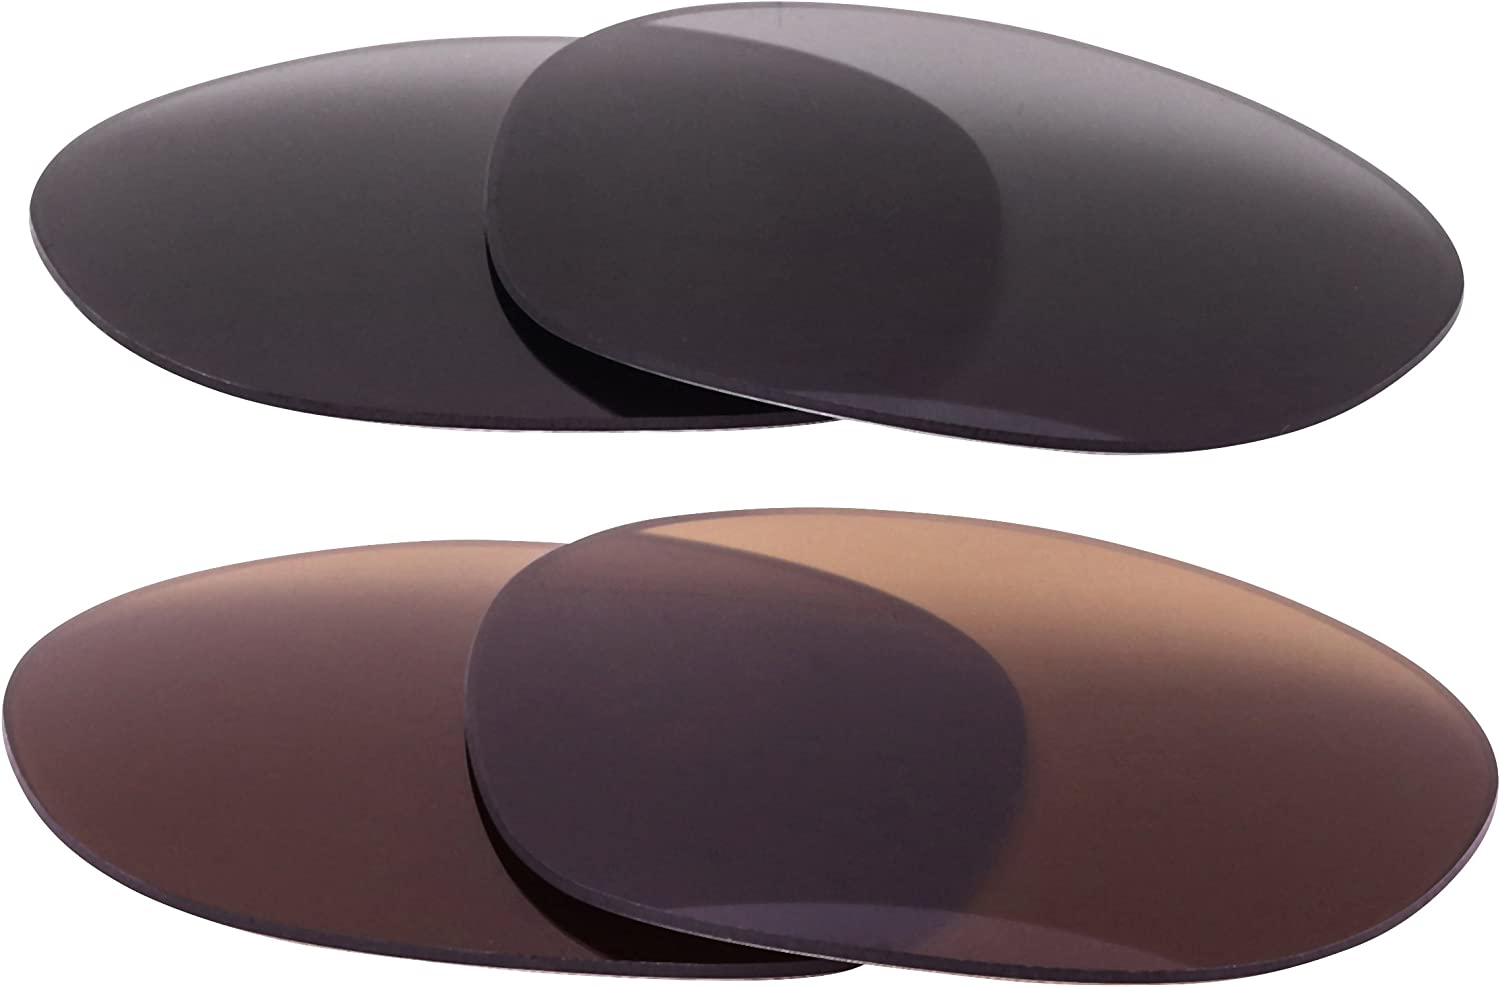 low-pricing LenzFlip Replacement lenses for Rayban Wayfarer New 55mm Inexpensive RB2132